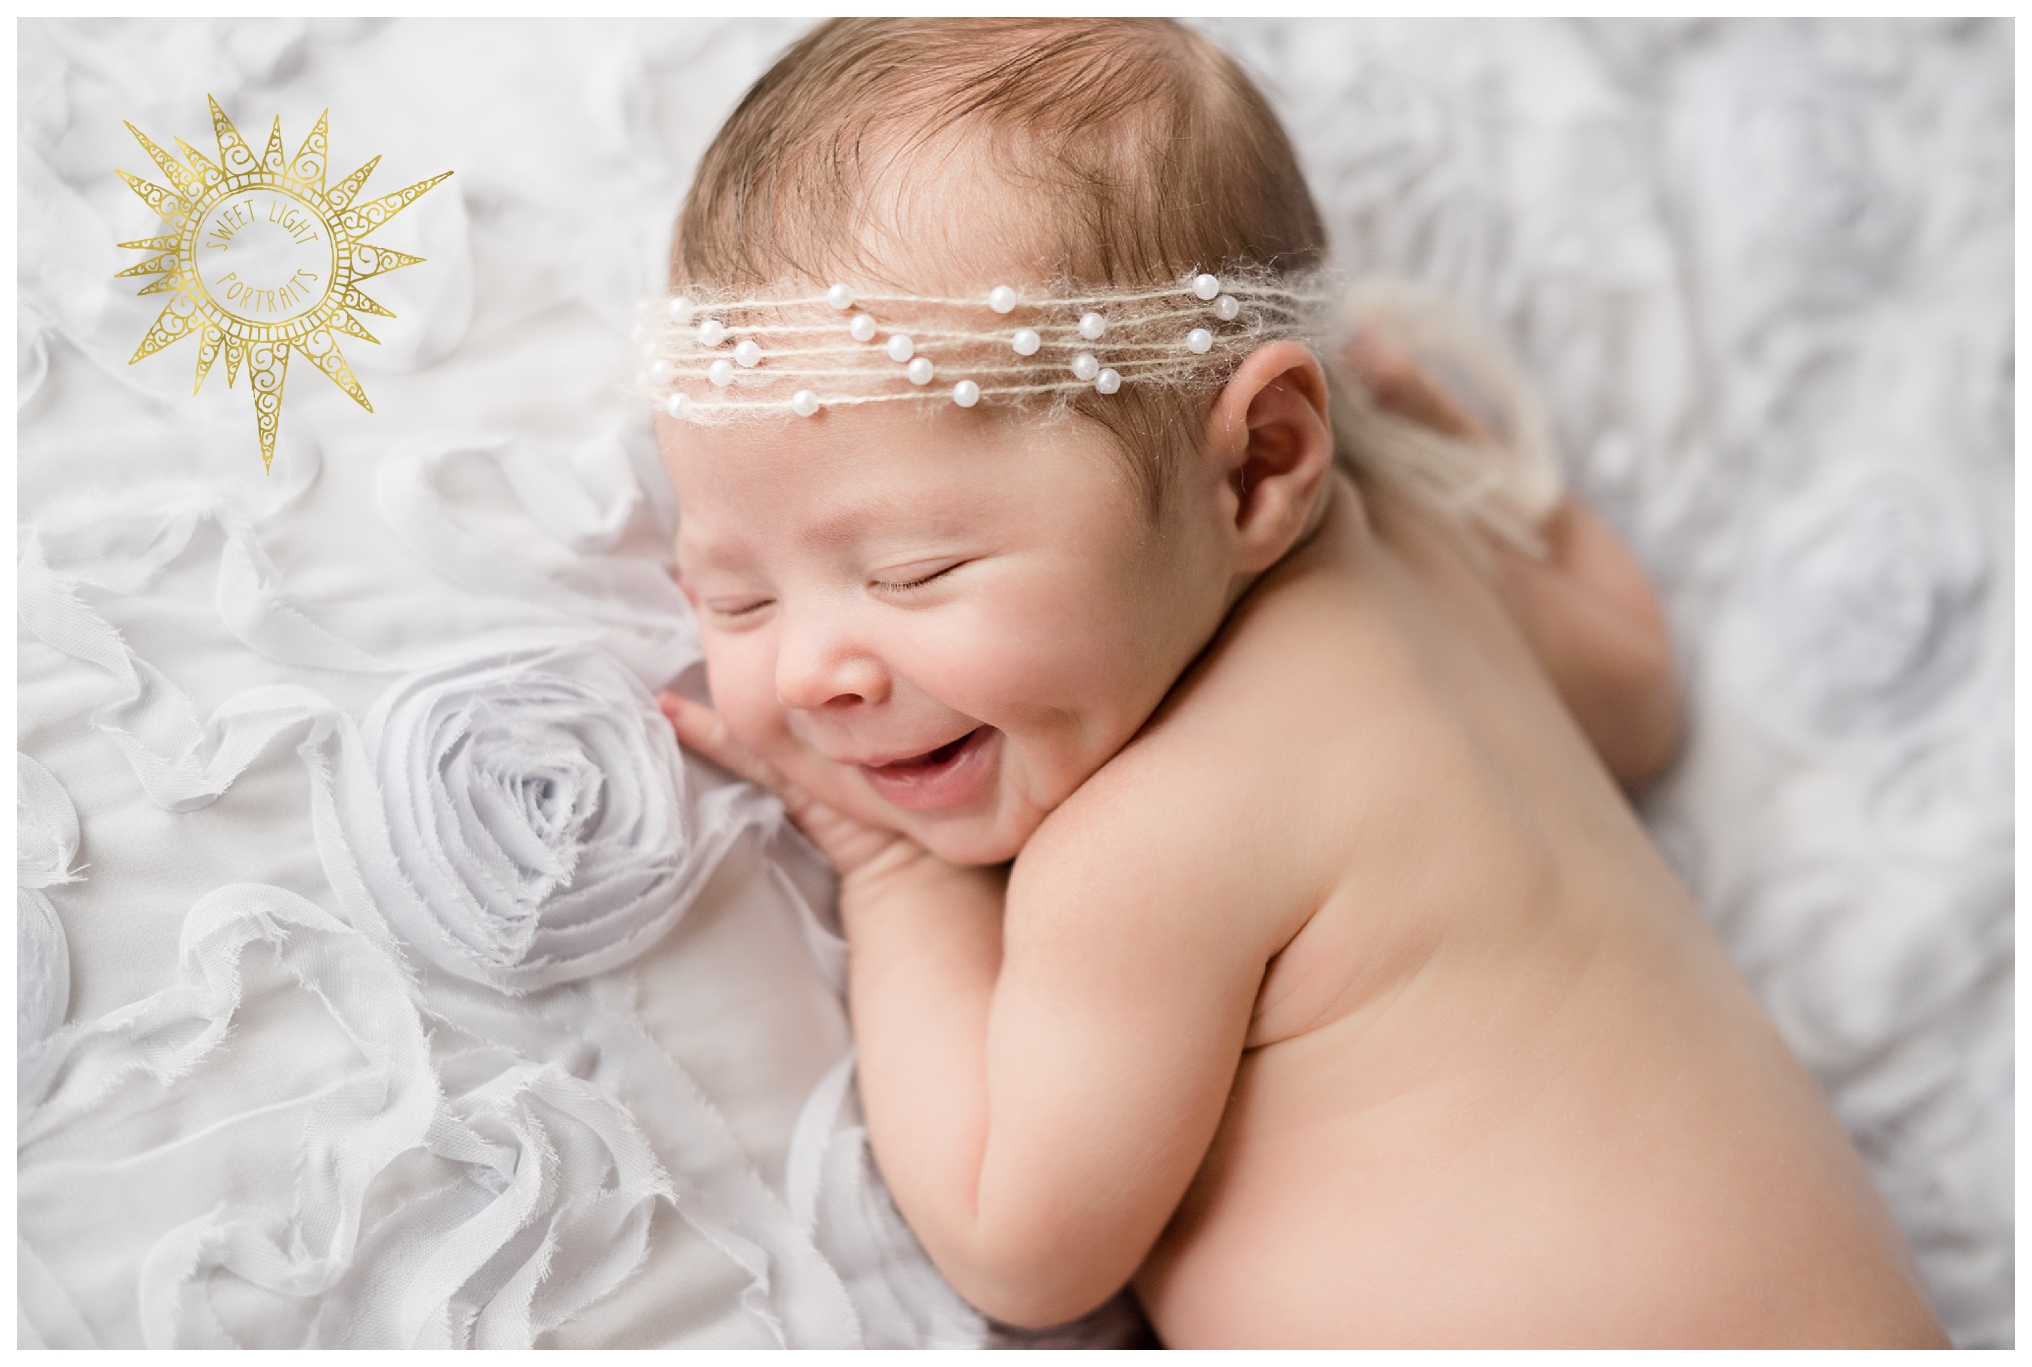 Newborn-Photos-Sweet-Light-Portraits34.jpg